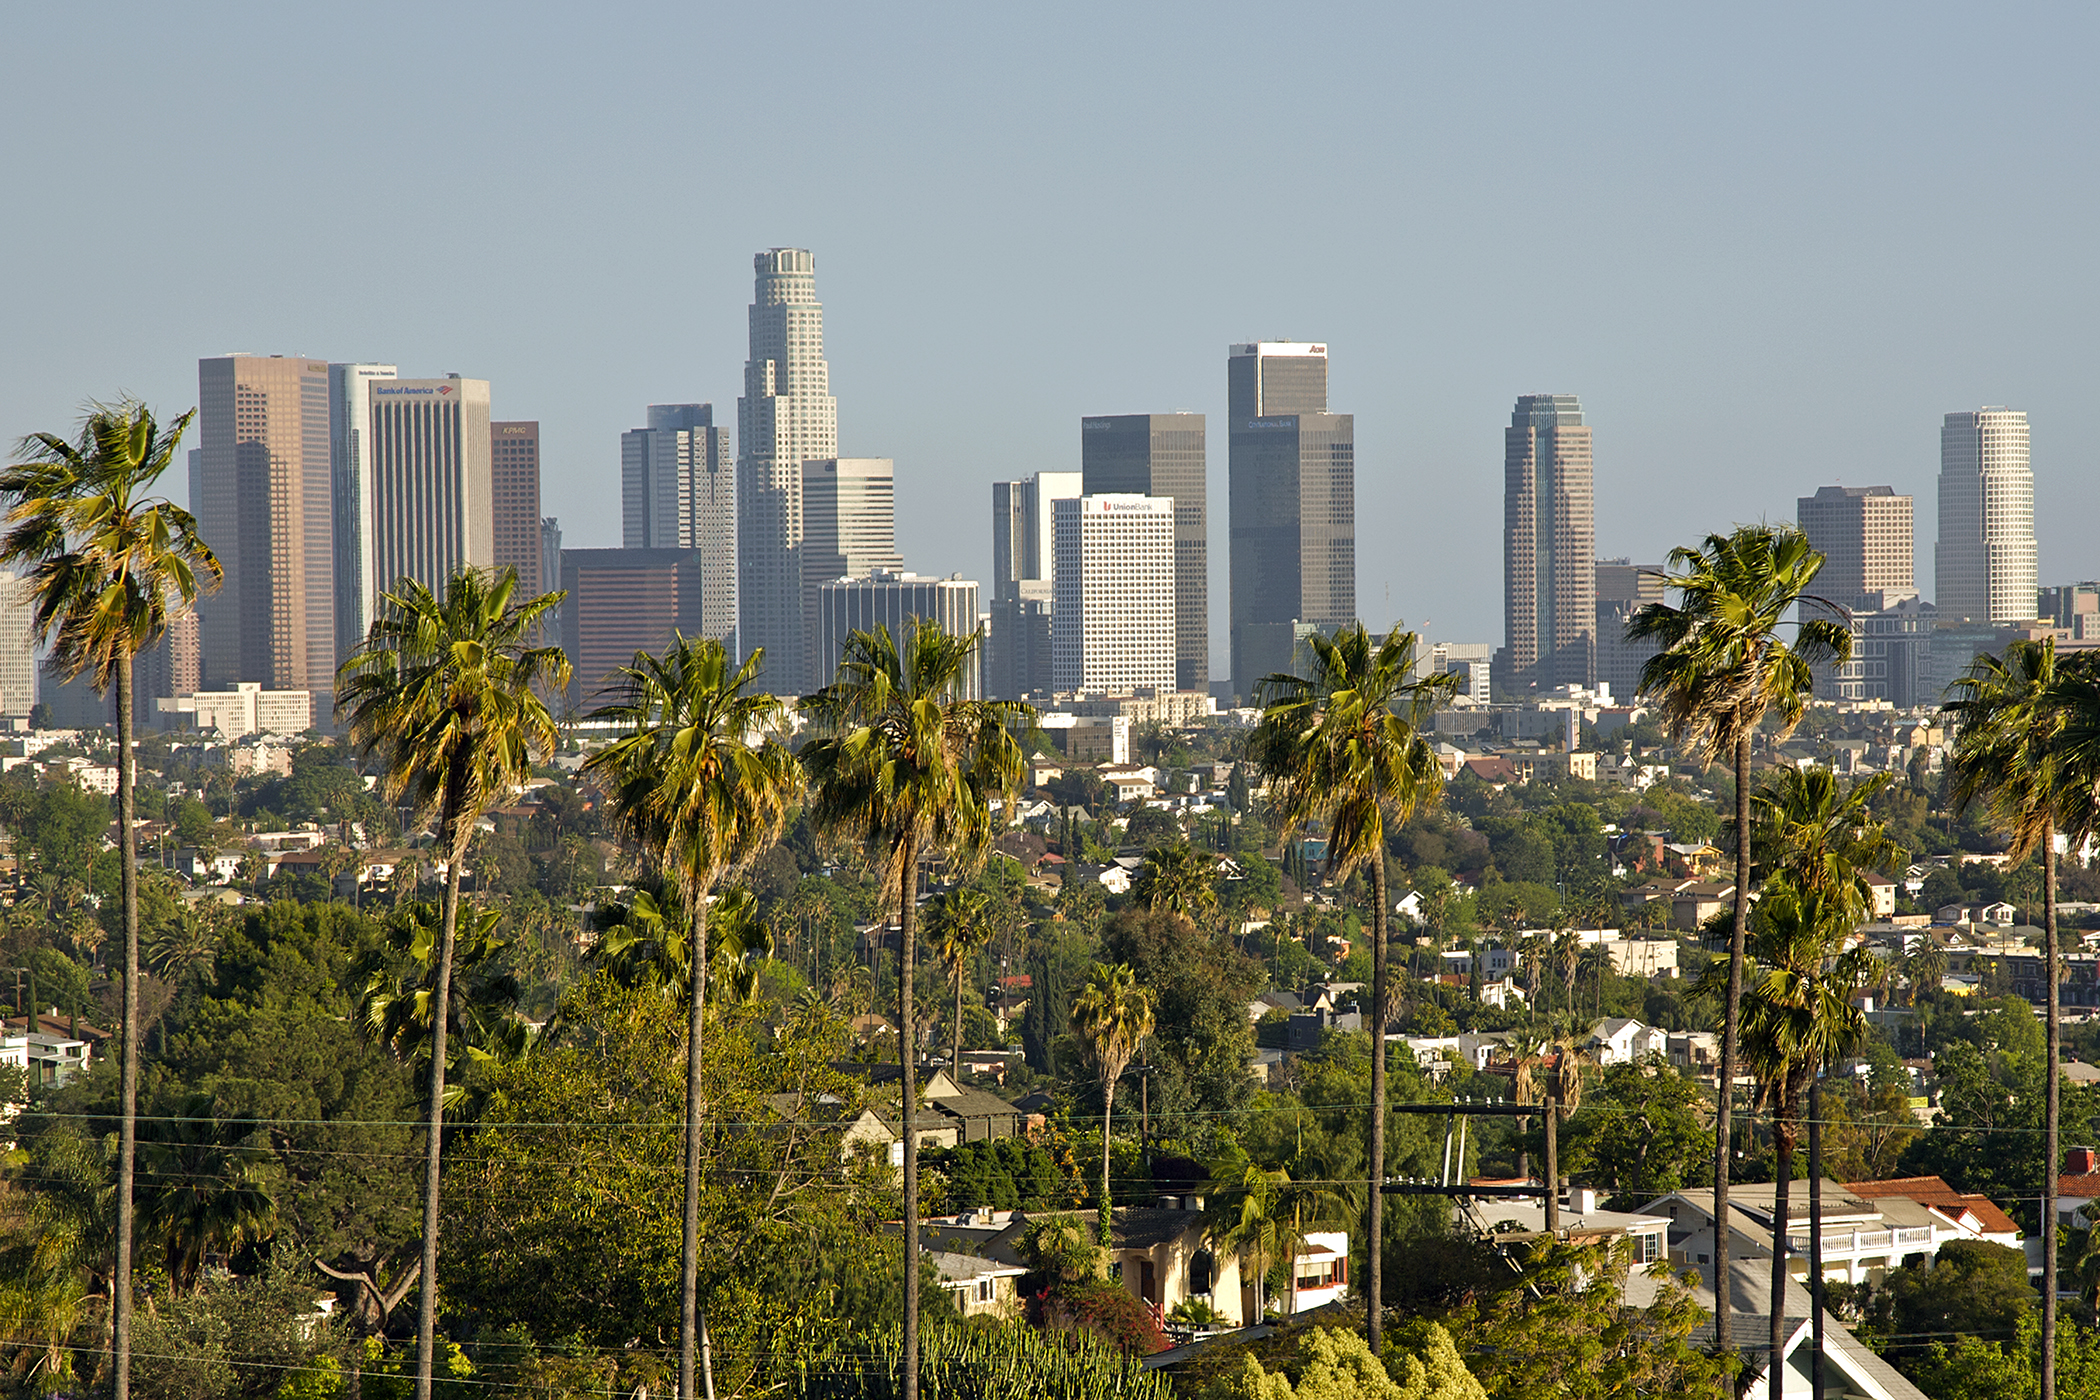 View of downtown Los Angeles from Silver Lake, California